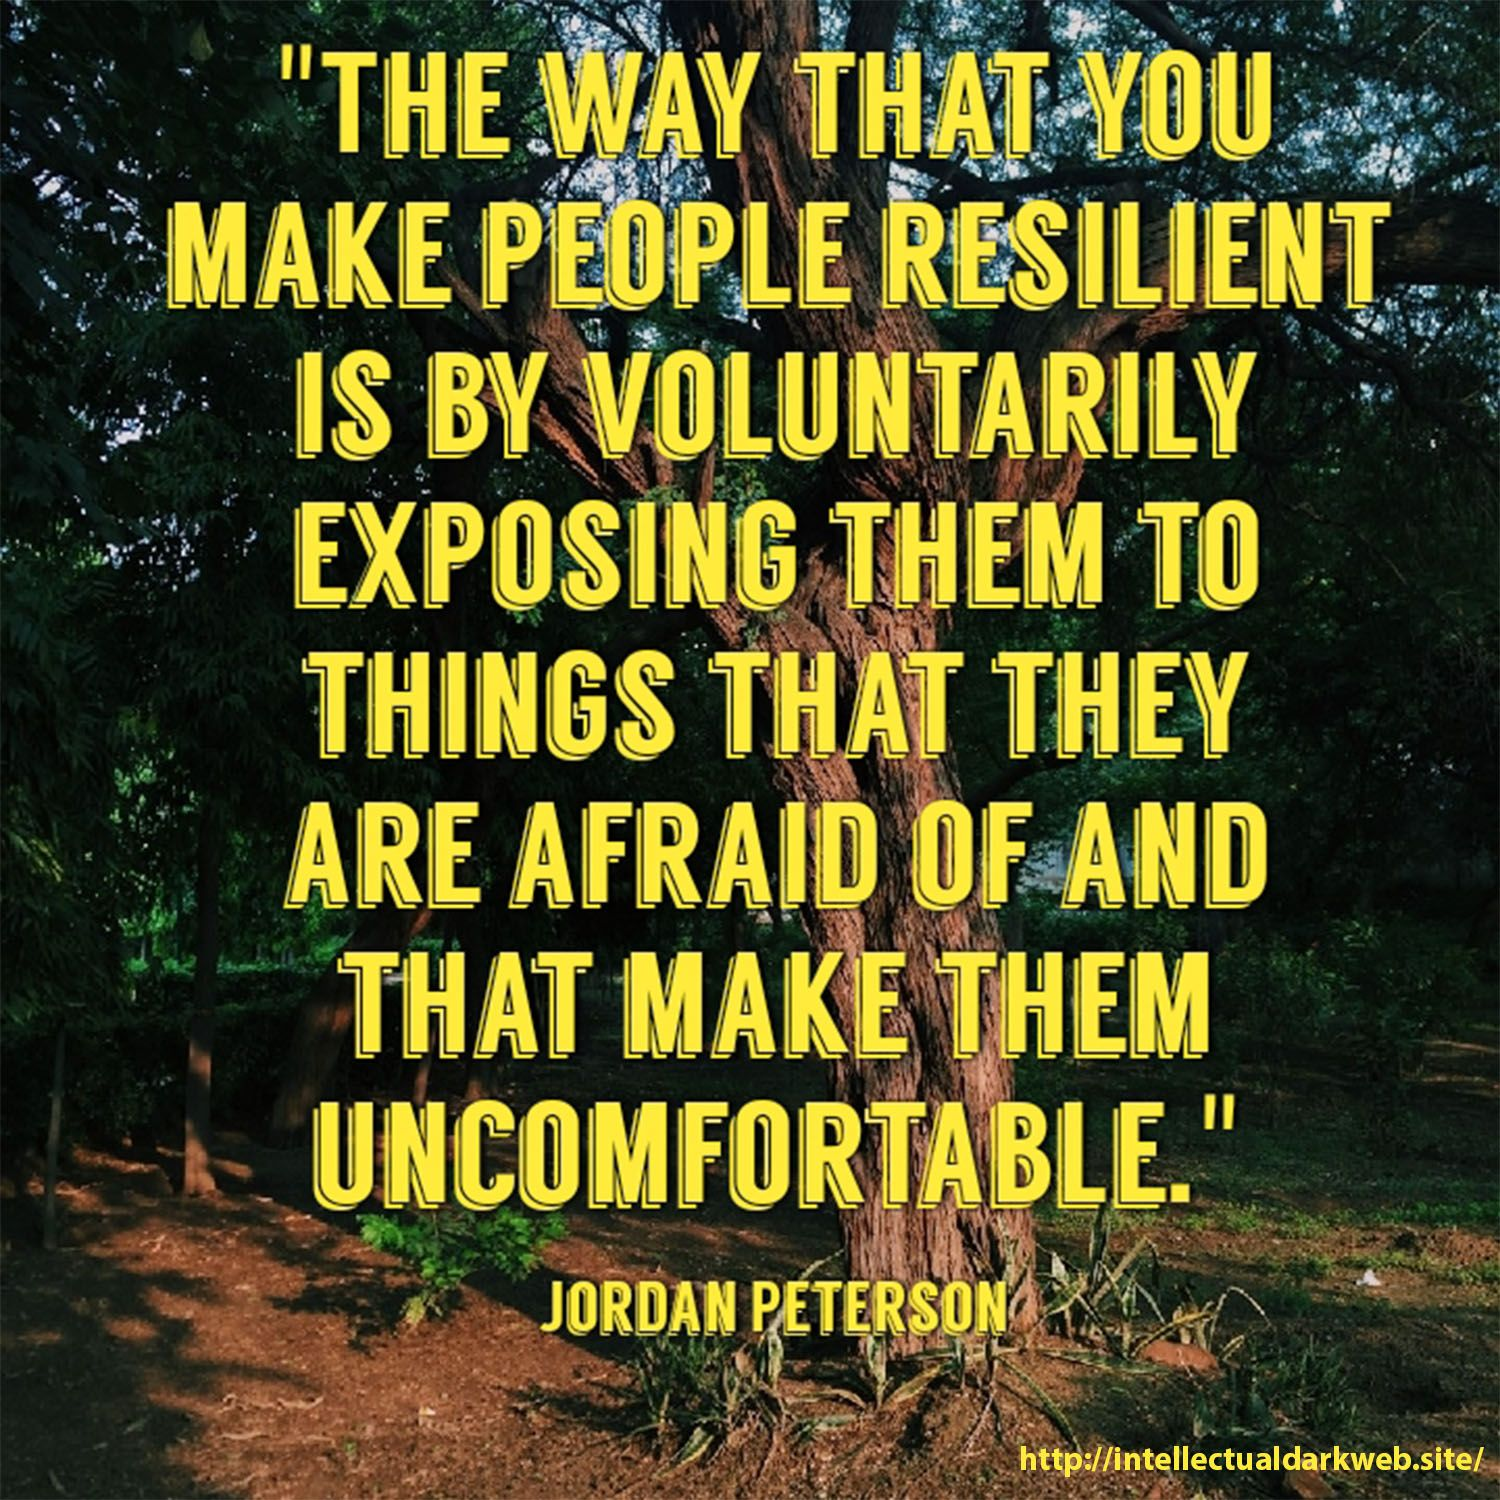 Jordan Peterson Quote About Making People Feel Comfortable How To Make Jordan Peterson Resilience